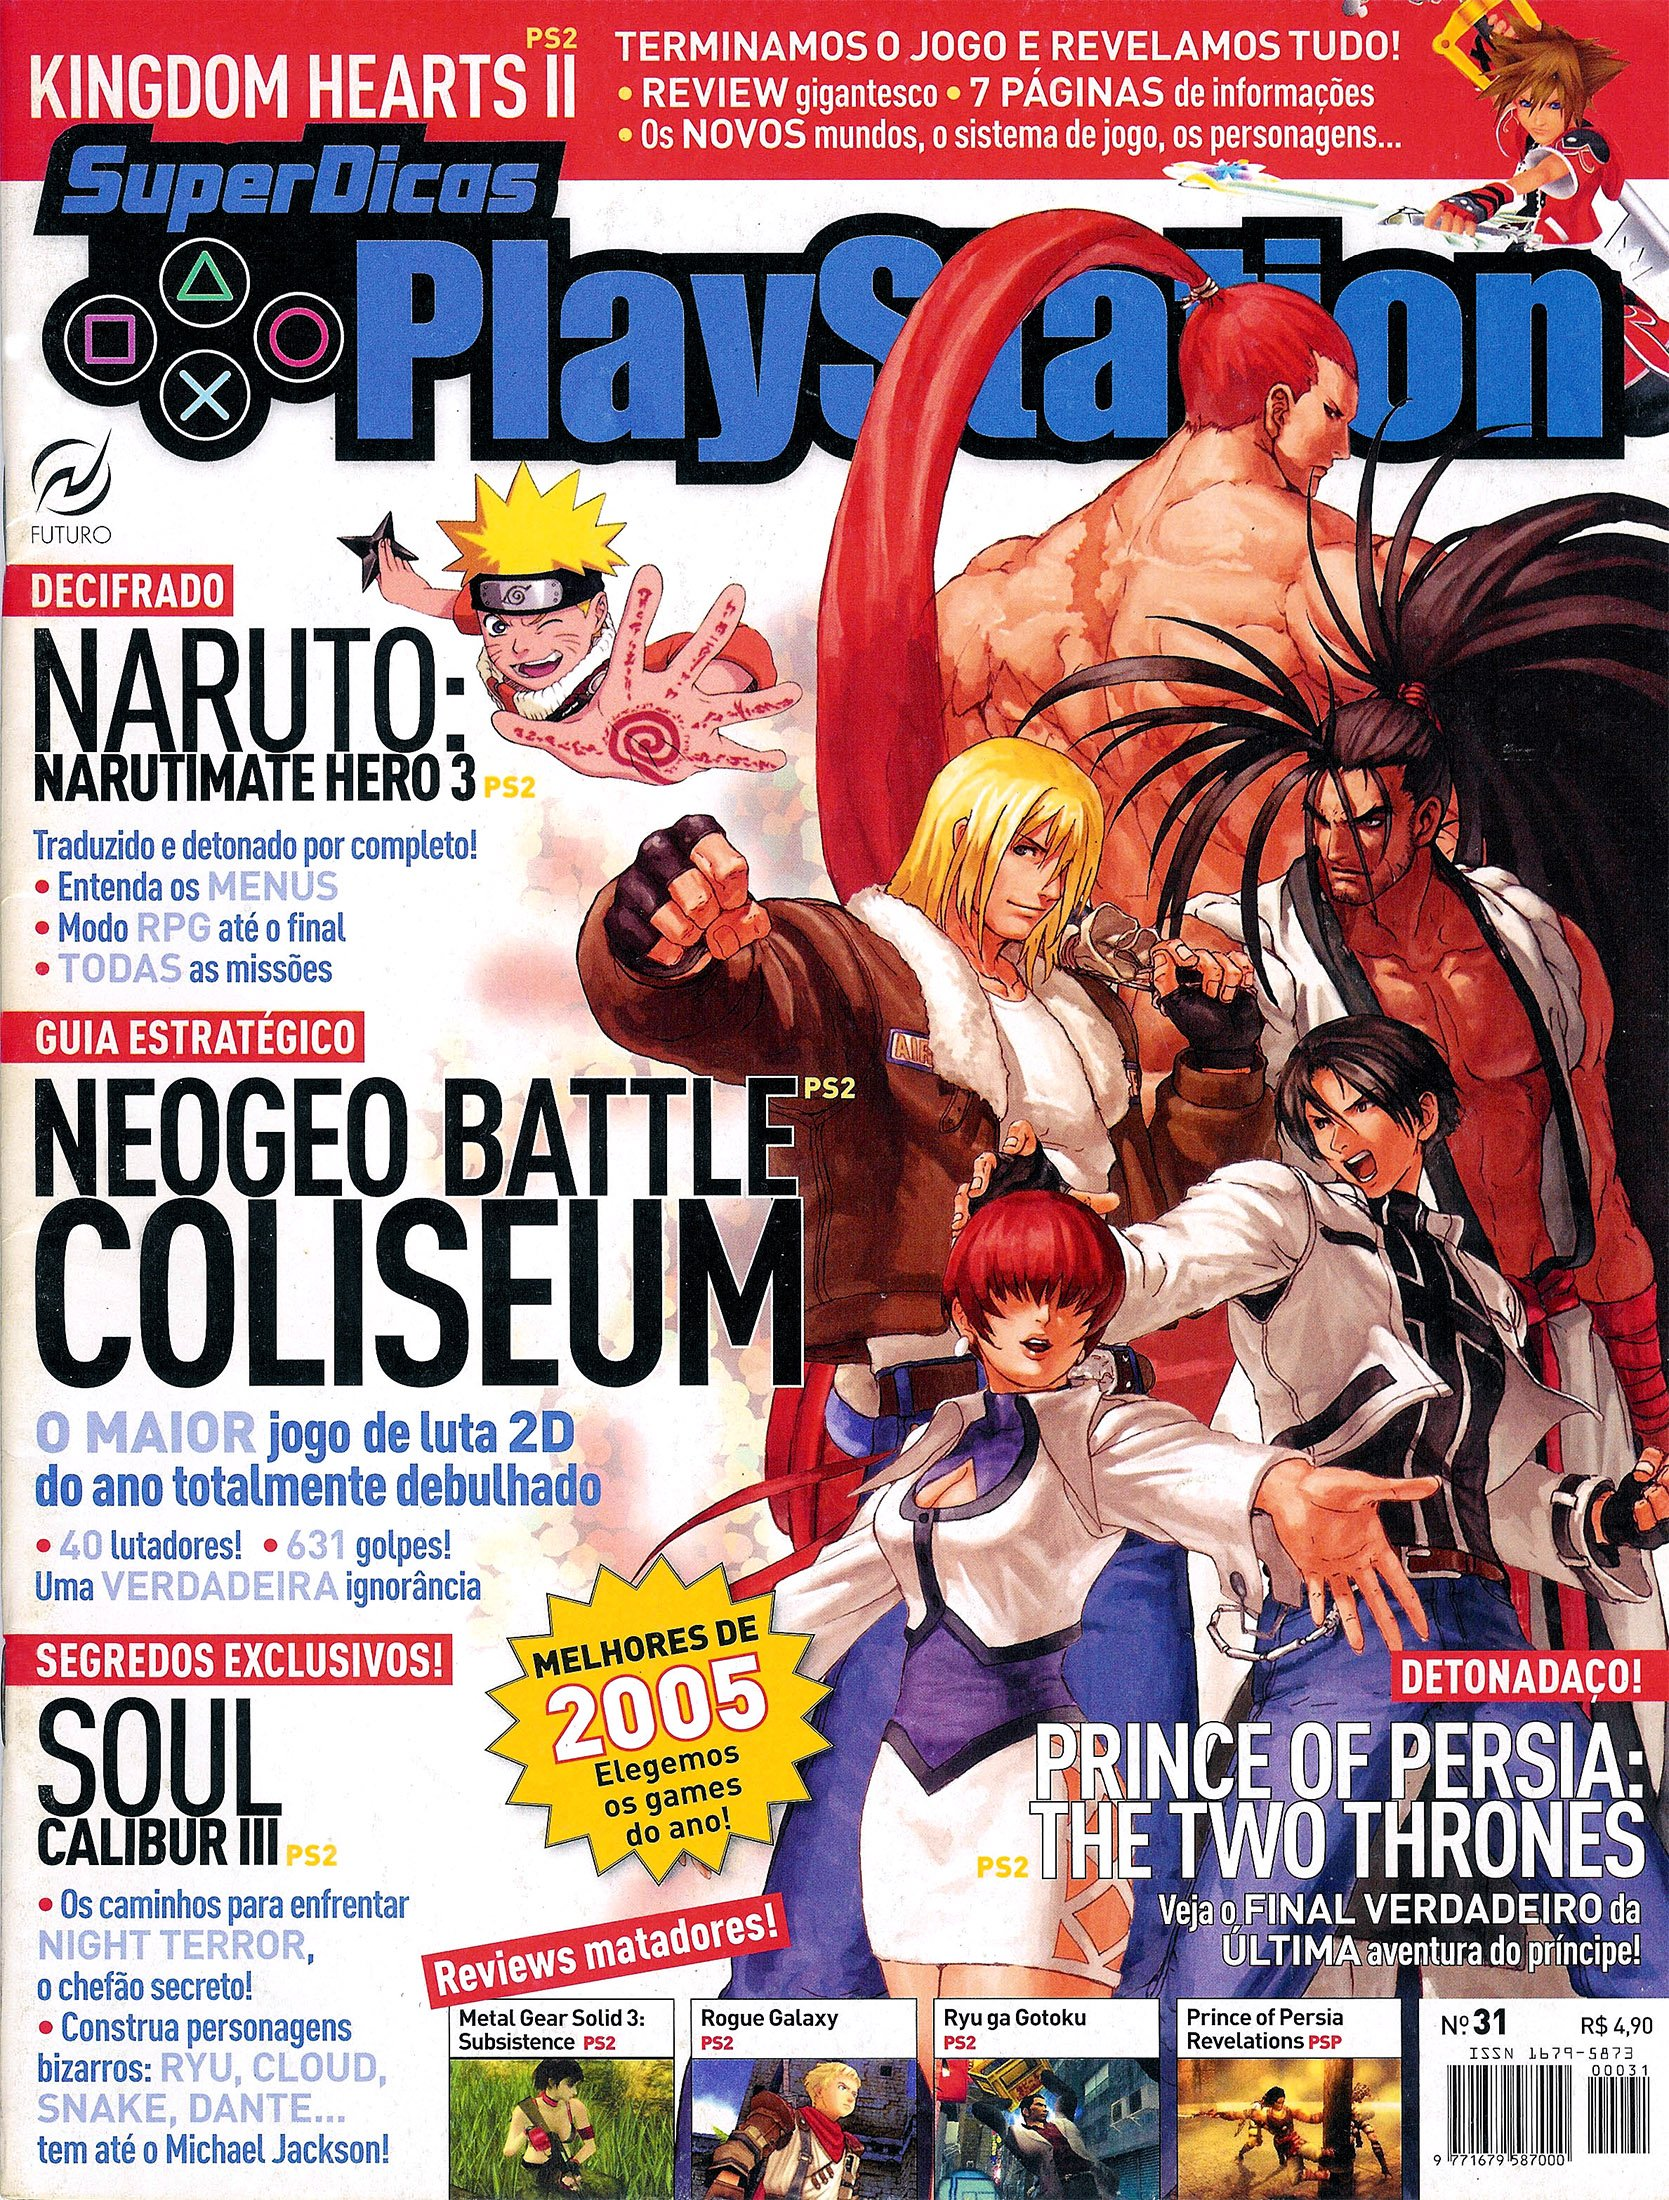 Super Dicas Playstation 31 (February 2006)